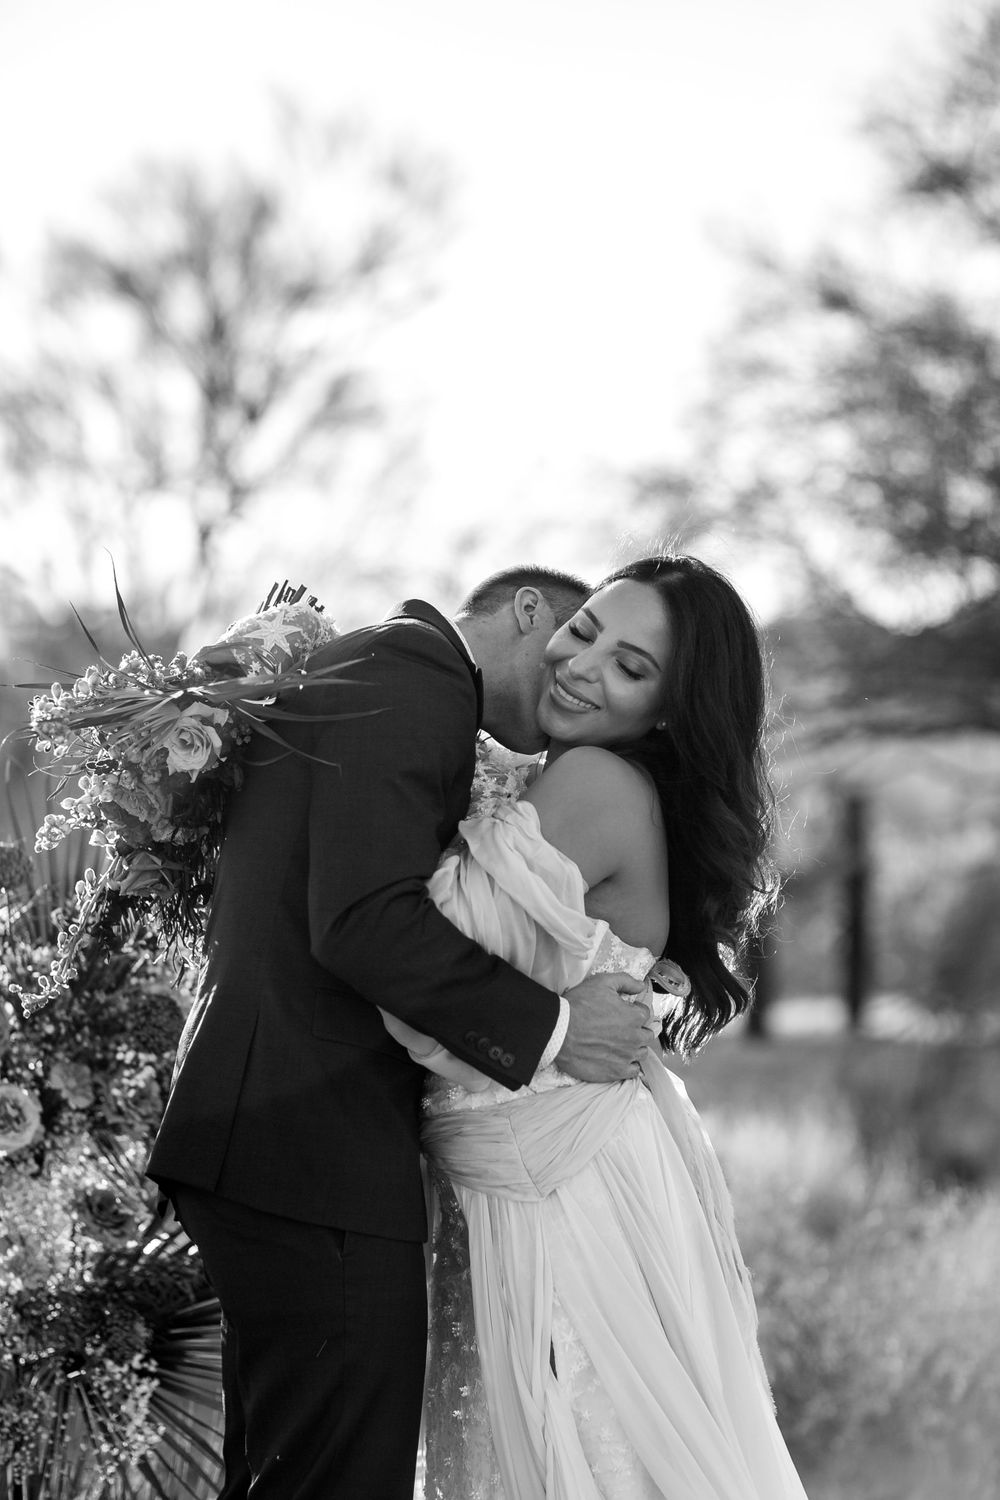 rebecca skidgel photography arizona elopement wedding photographer groom kissing brides neck making her laugh